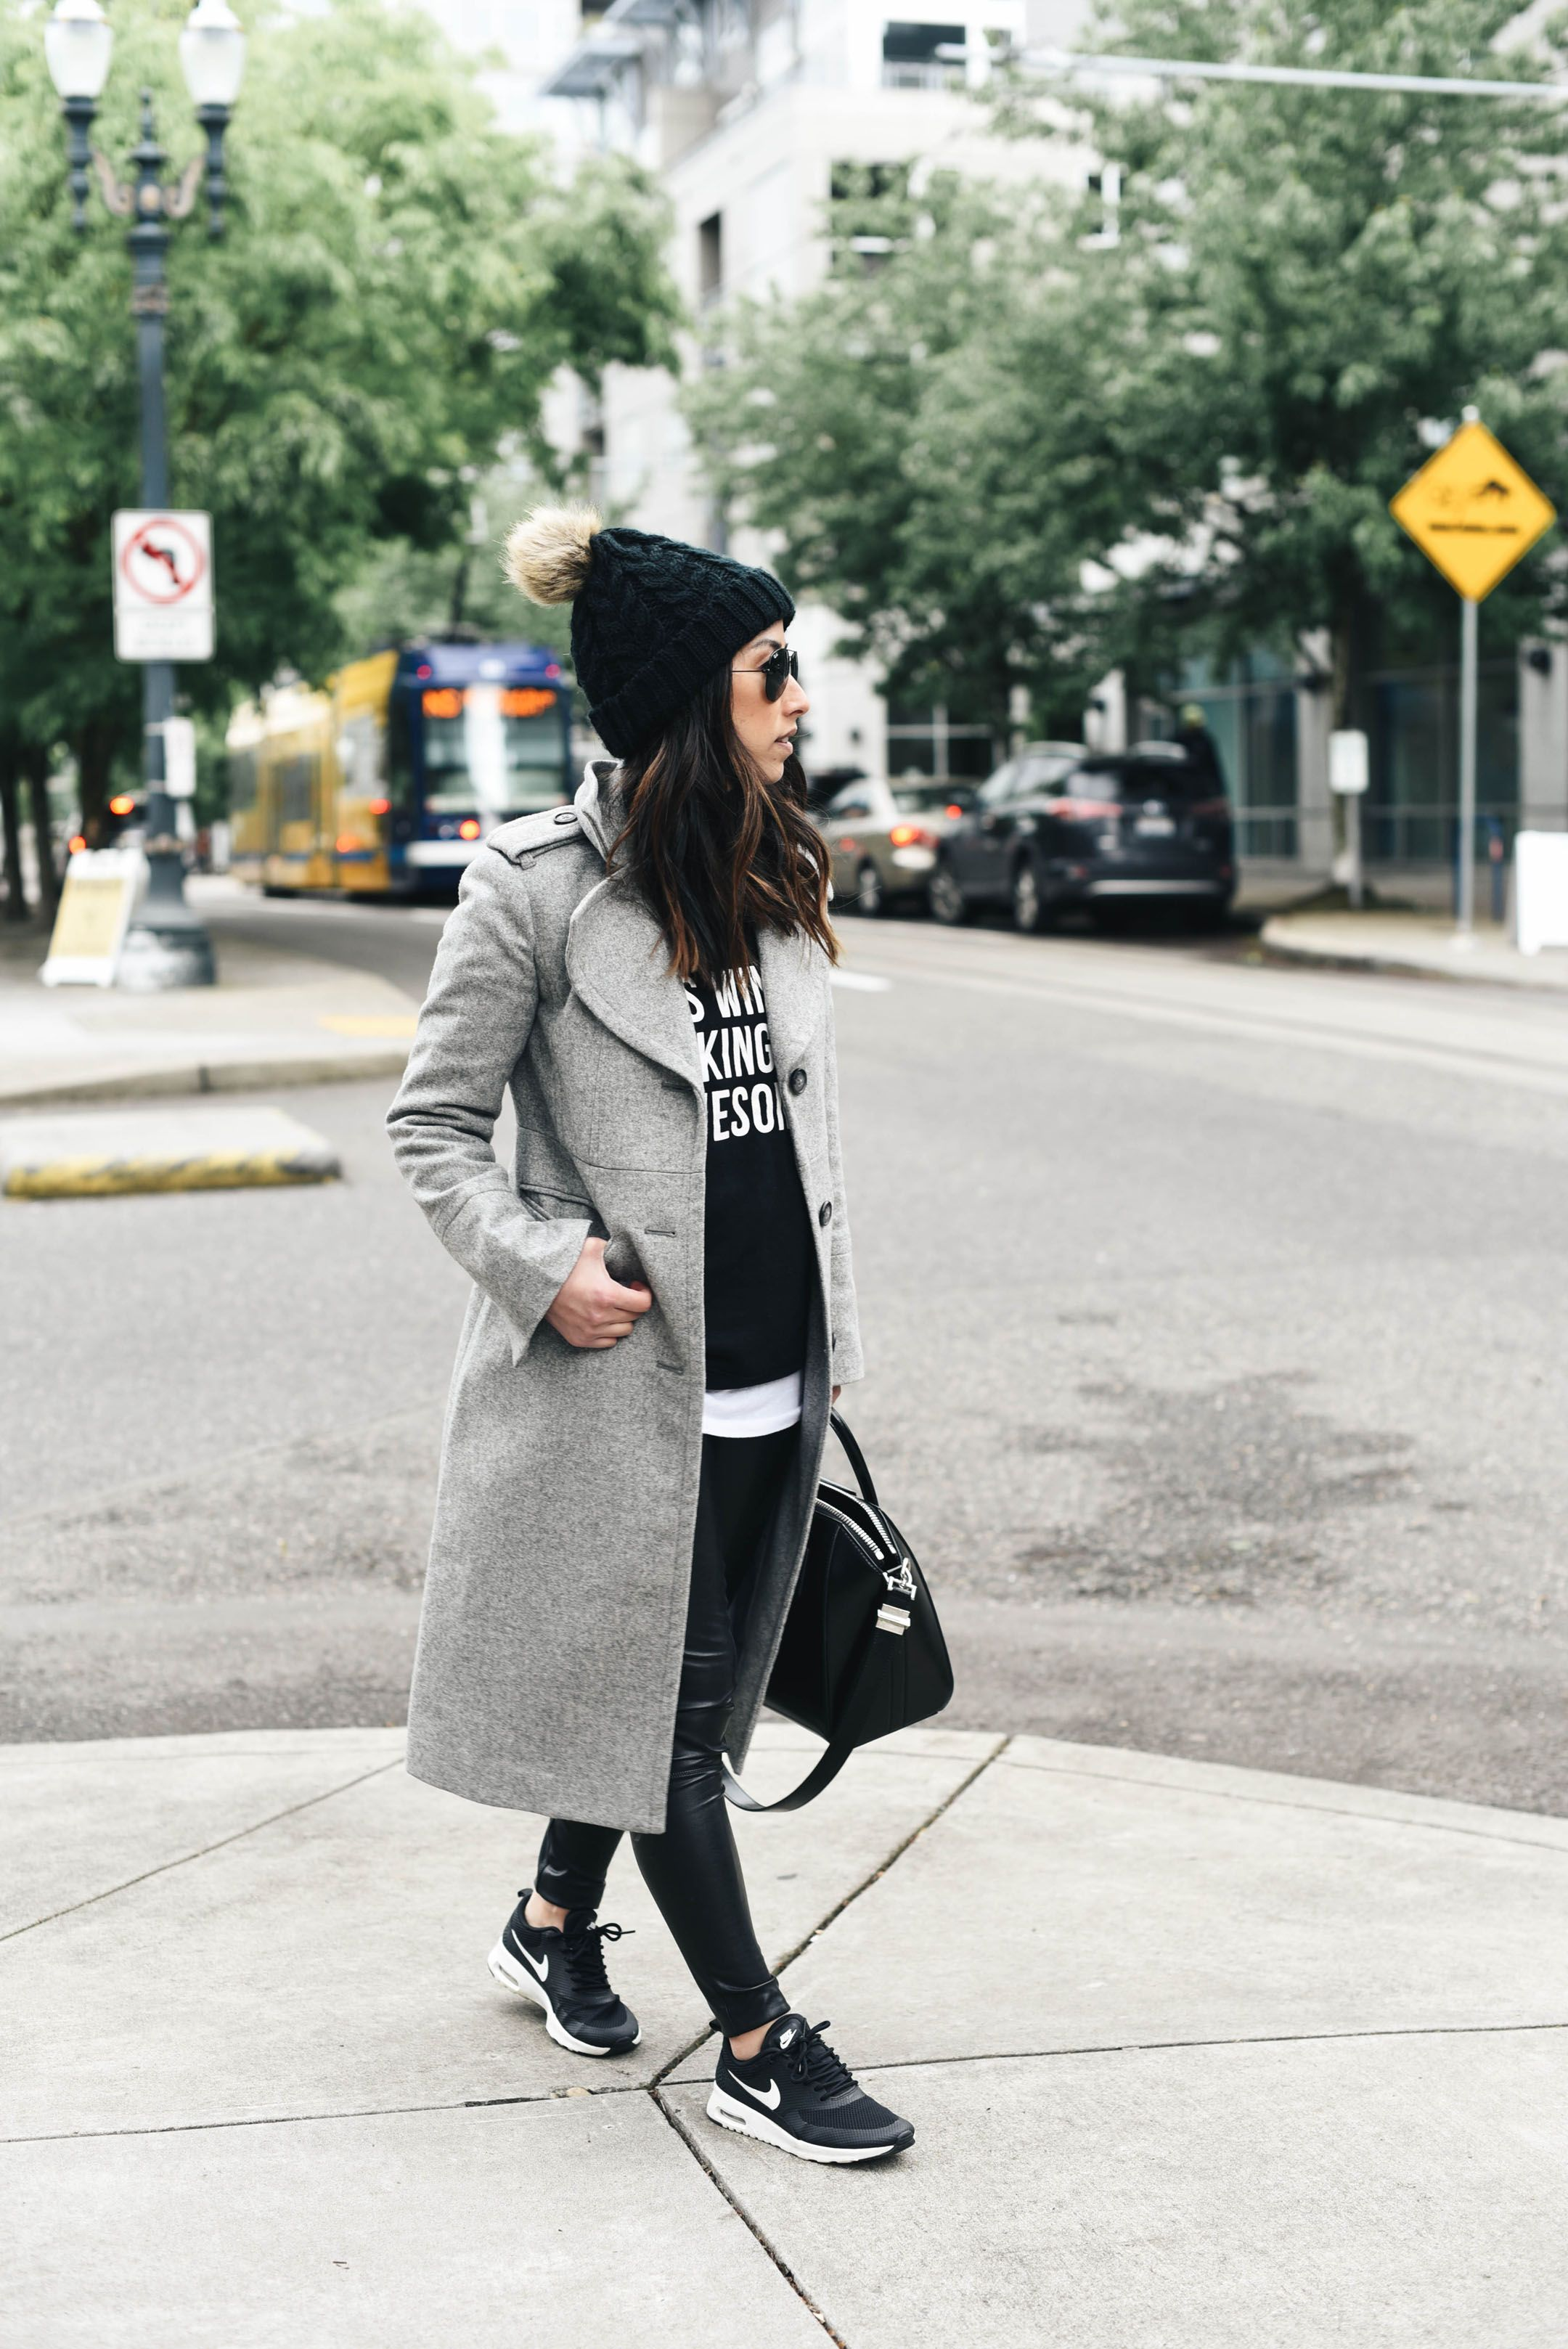 0d55c1f26 How To Pull Off Athleisure Wear + 30 Outfit Ideas | Chicago trip ...